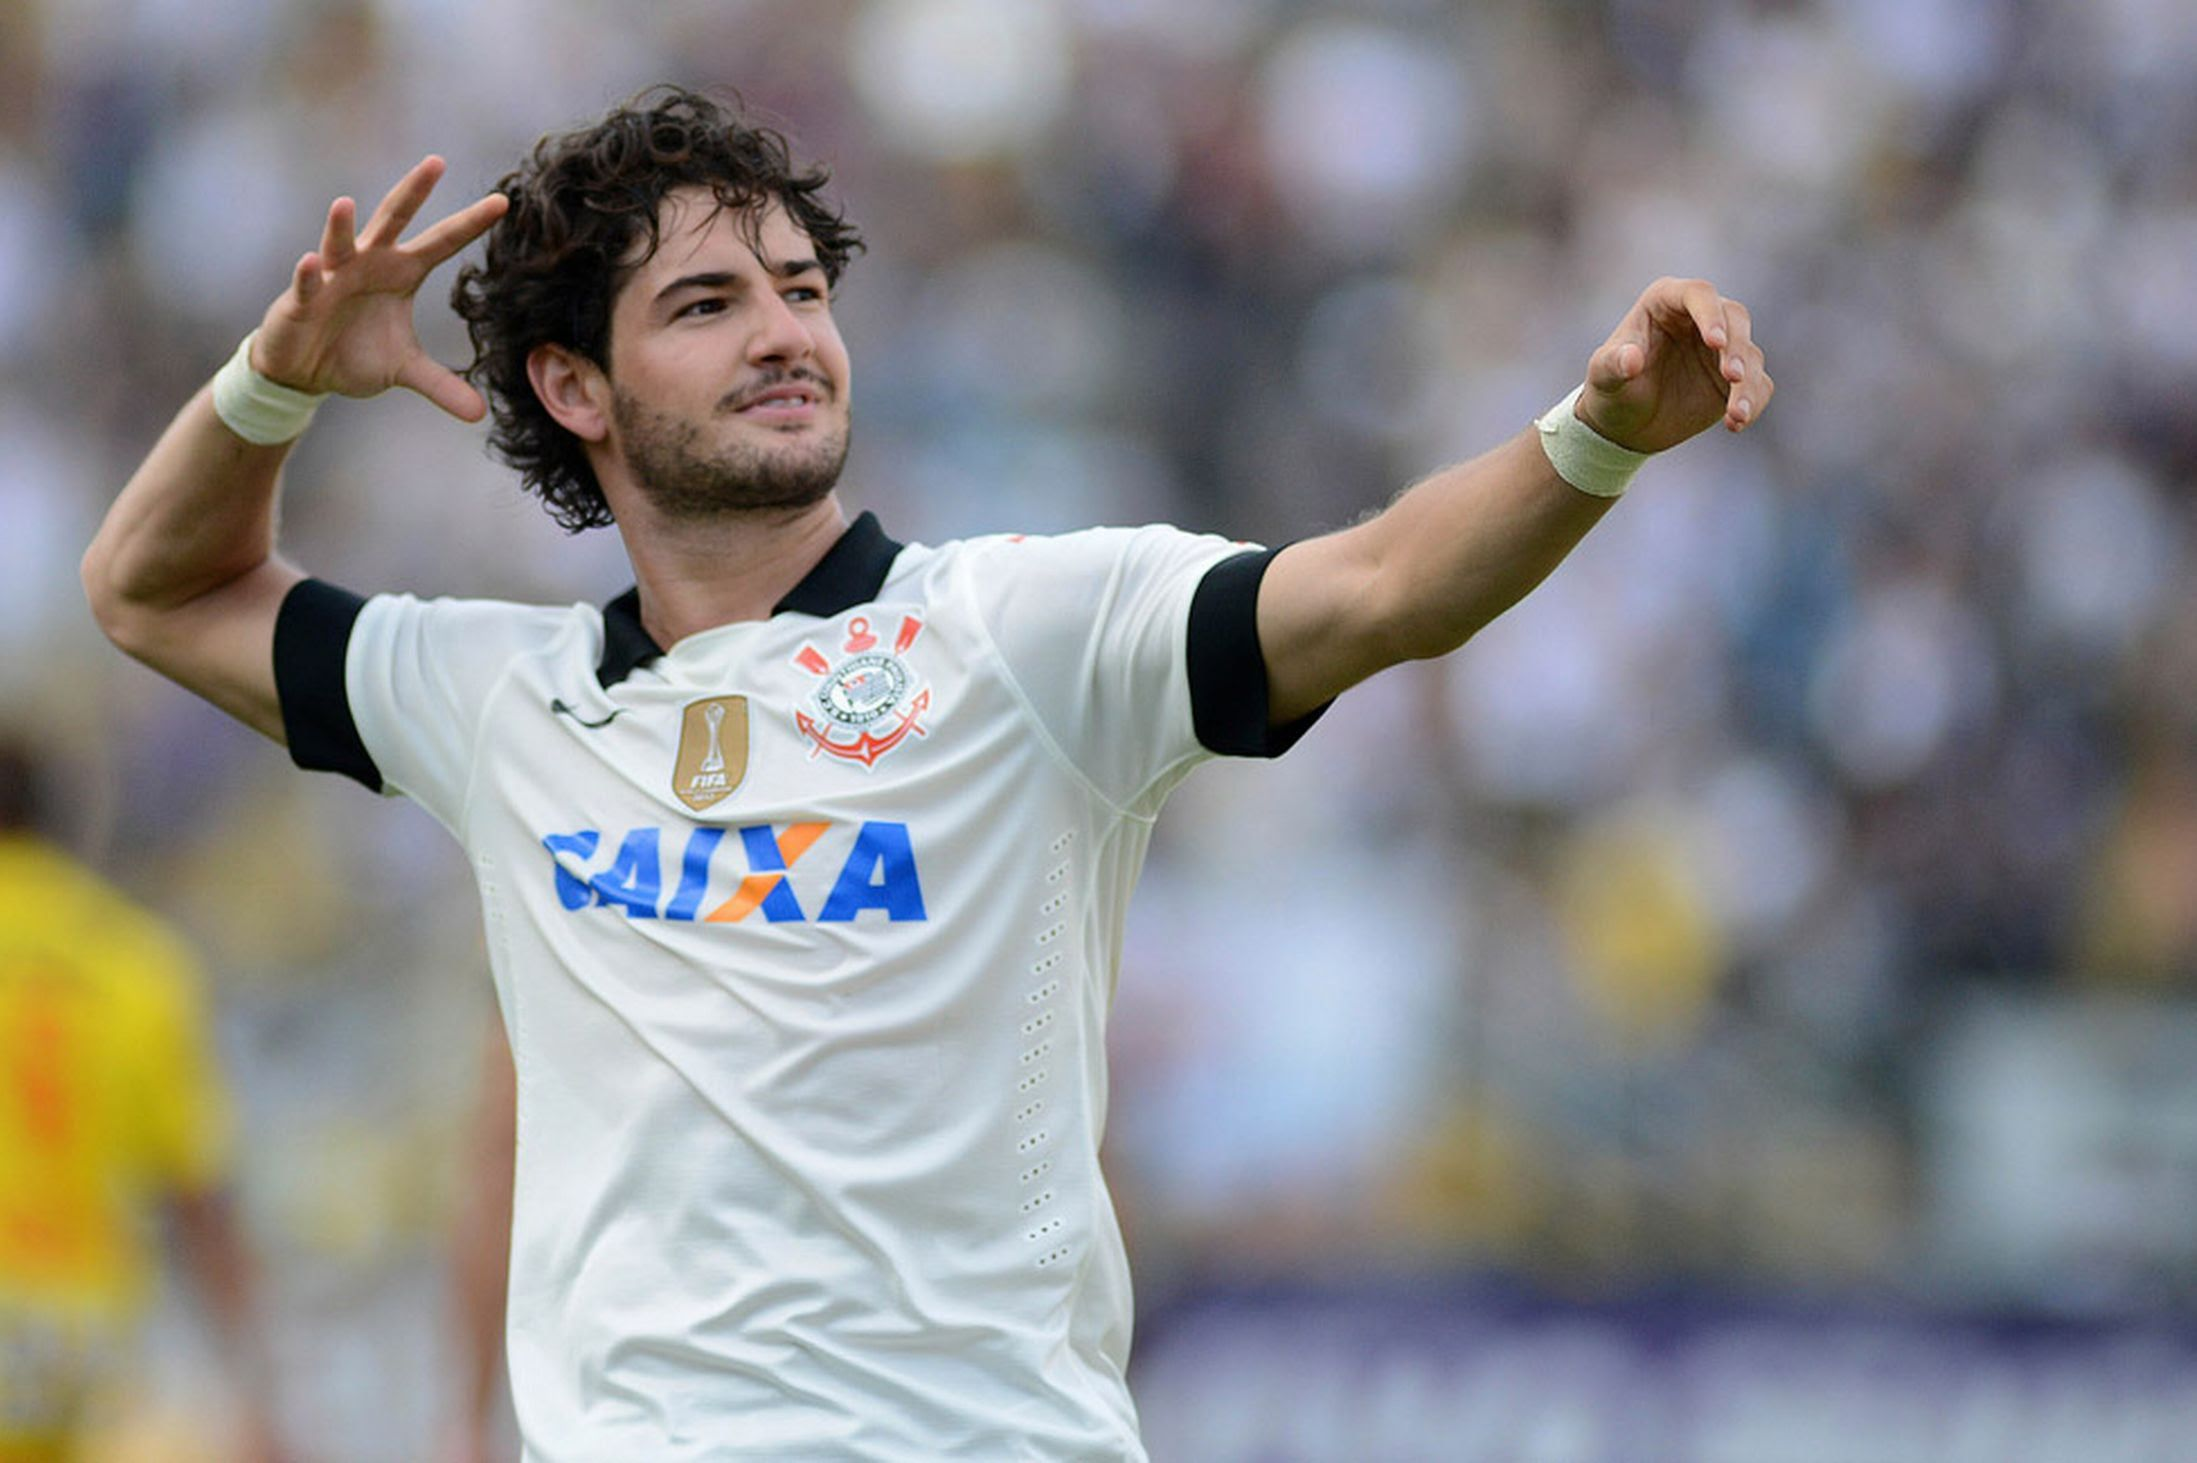 Alexandre Pato For Desktop